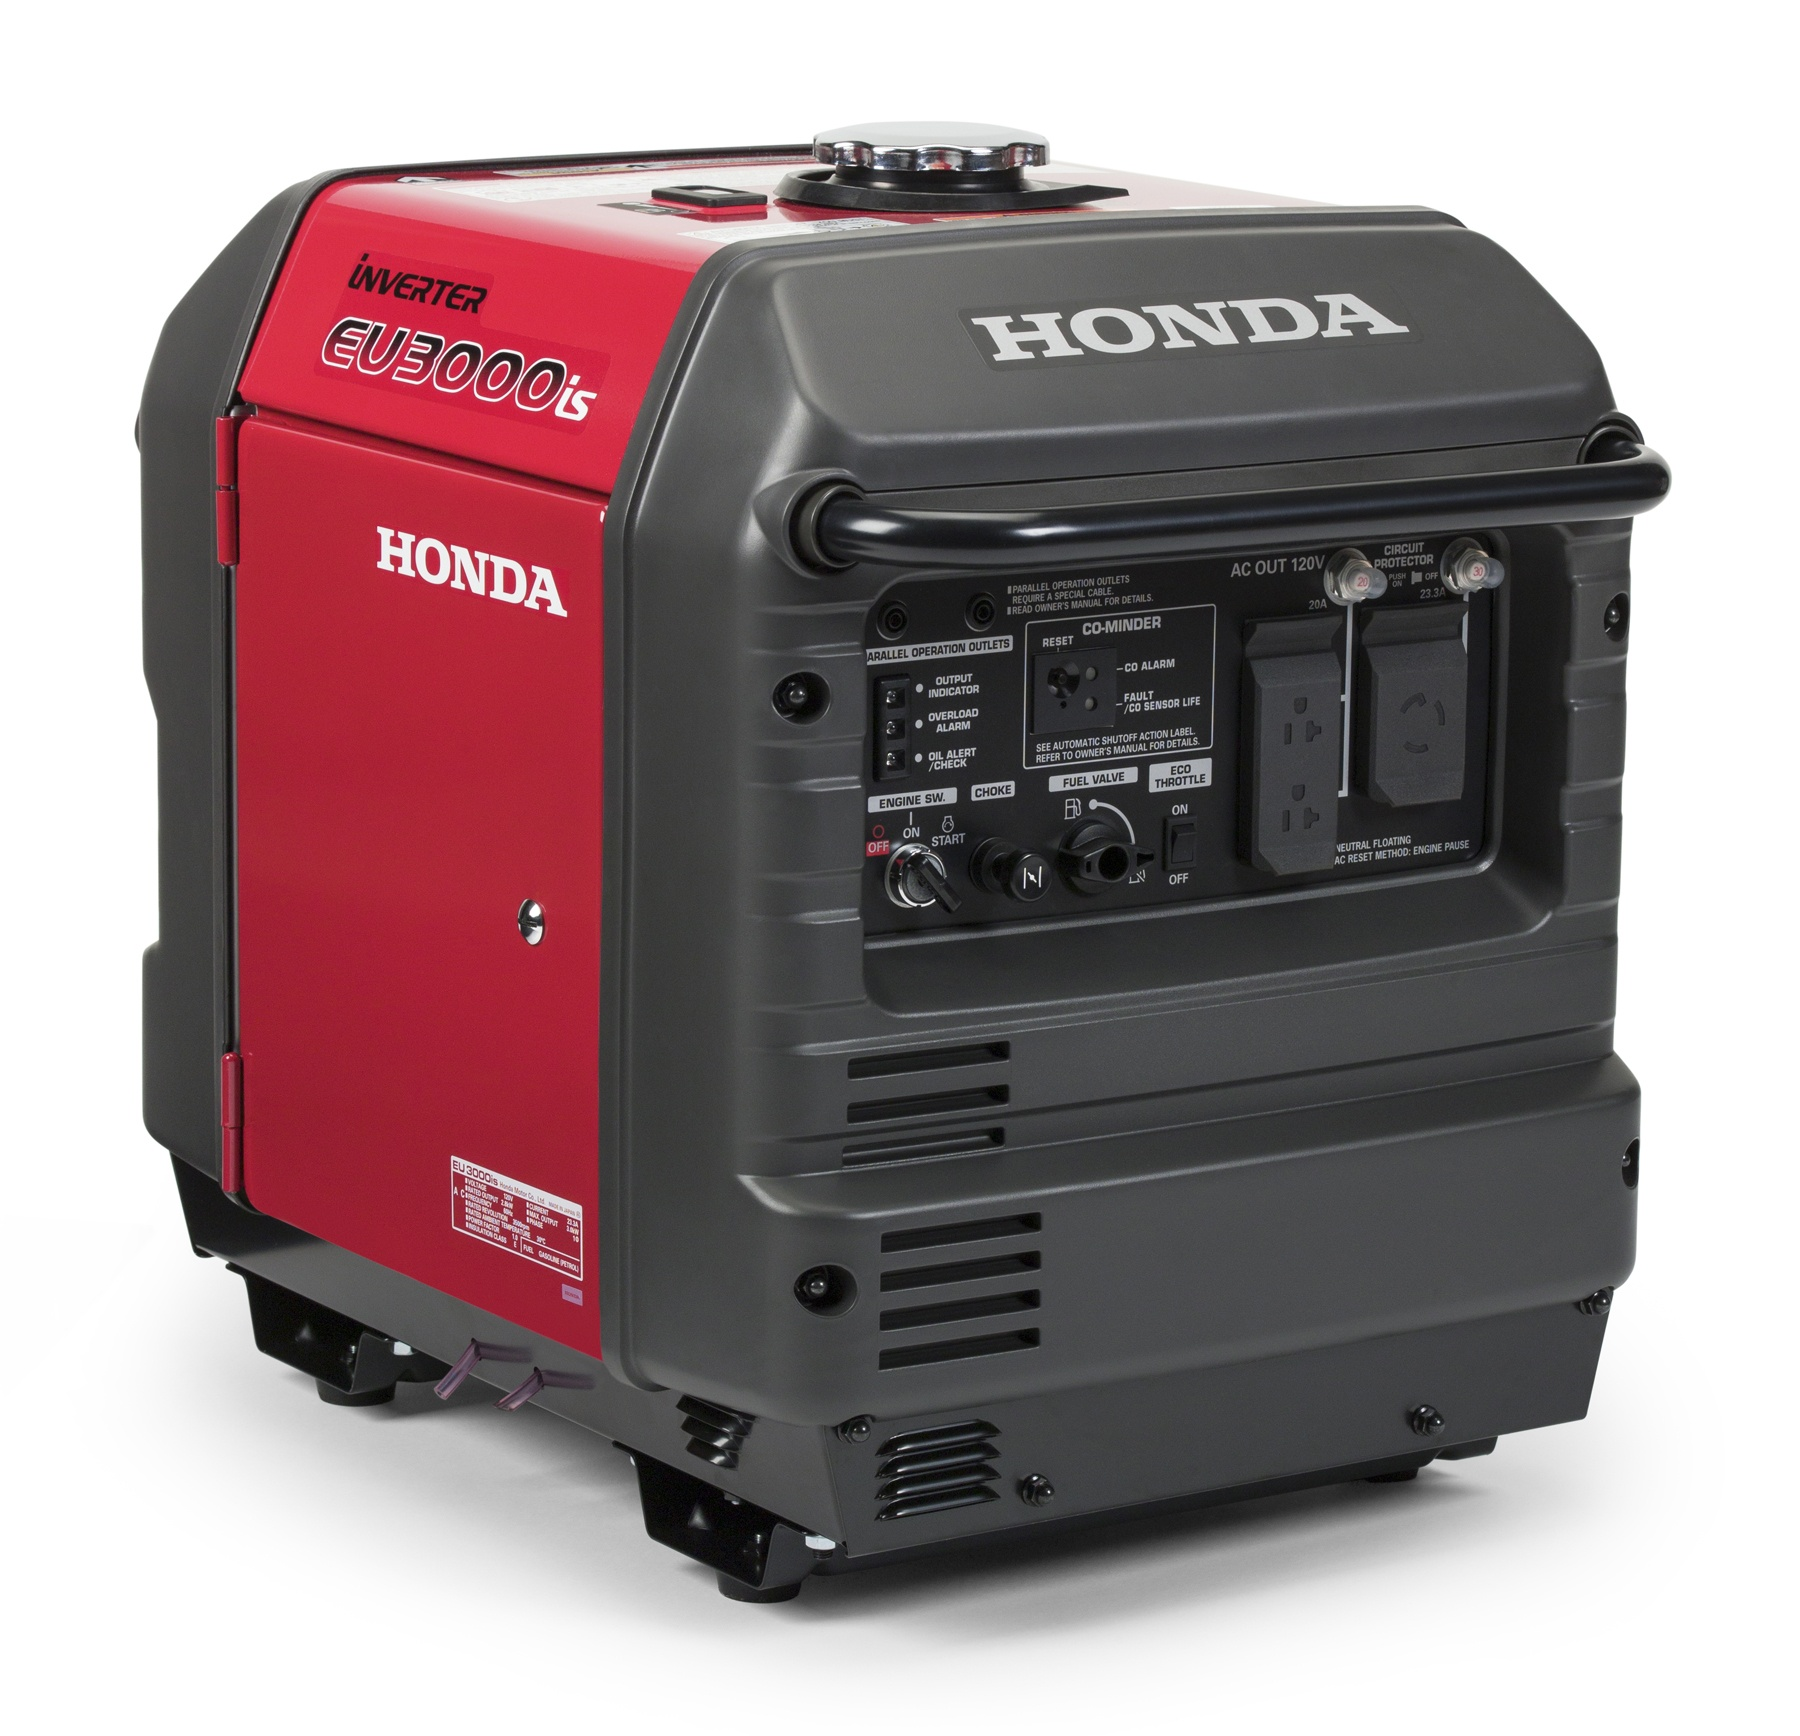 New From Honda: Co-Minder, Carbon Monoxide Detection System For Generators